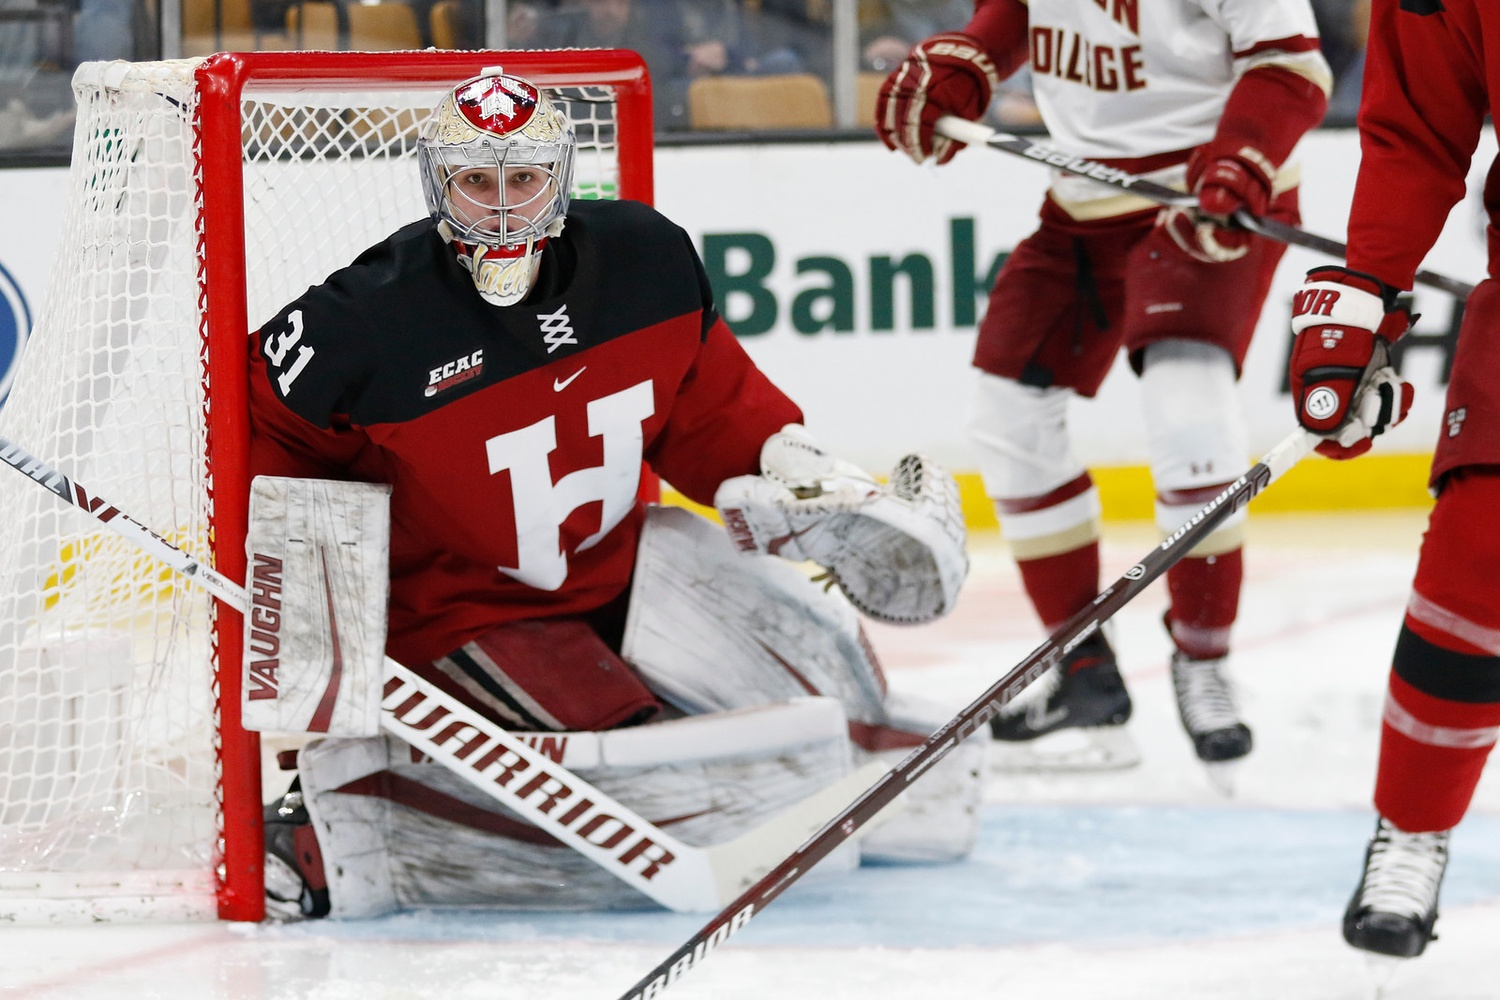 Despite the loss, Crimson net-minder Michael Lackey continued his stretch of confident backstopping. The senior will be key to Harvard's success down the stretch of the season.